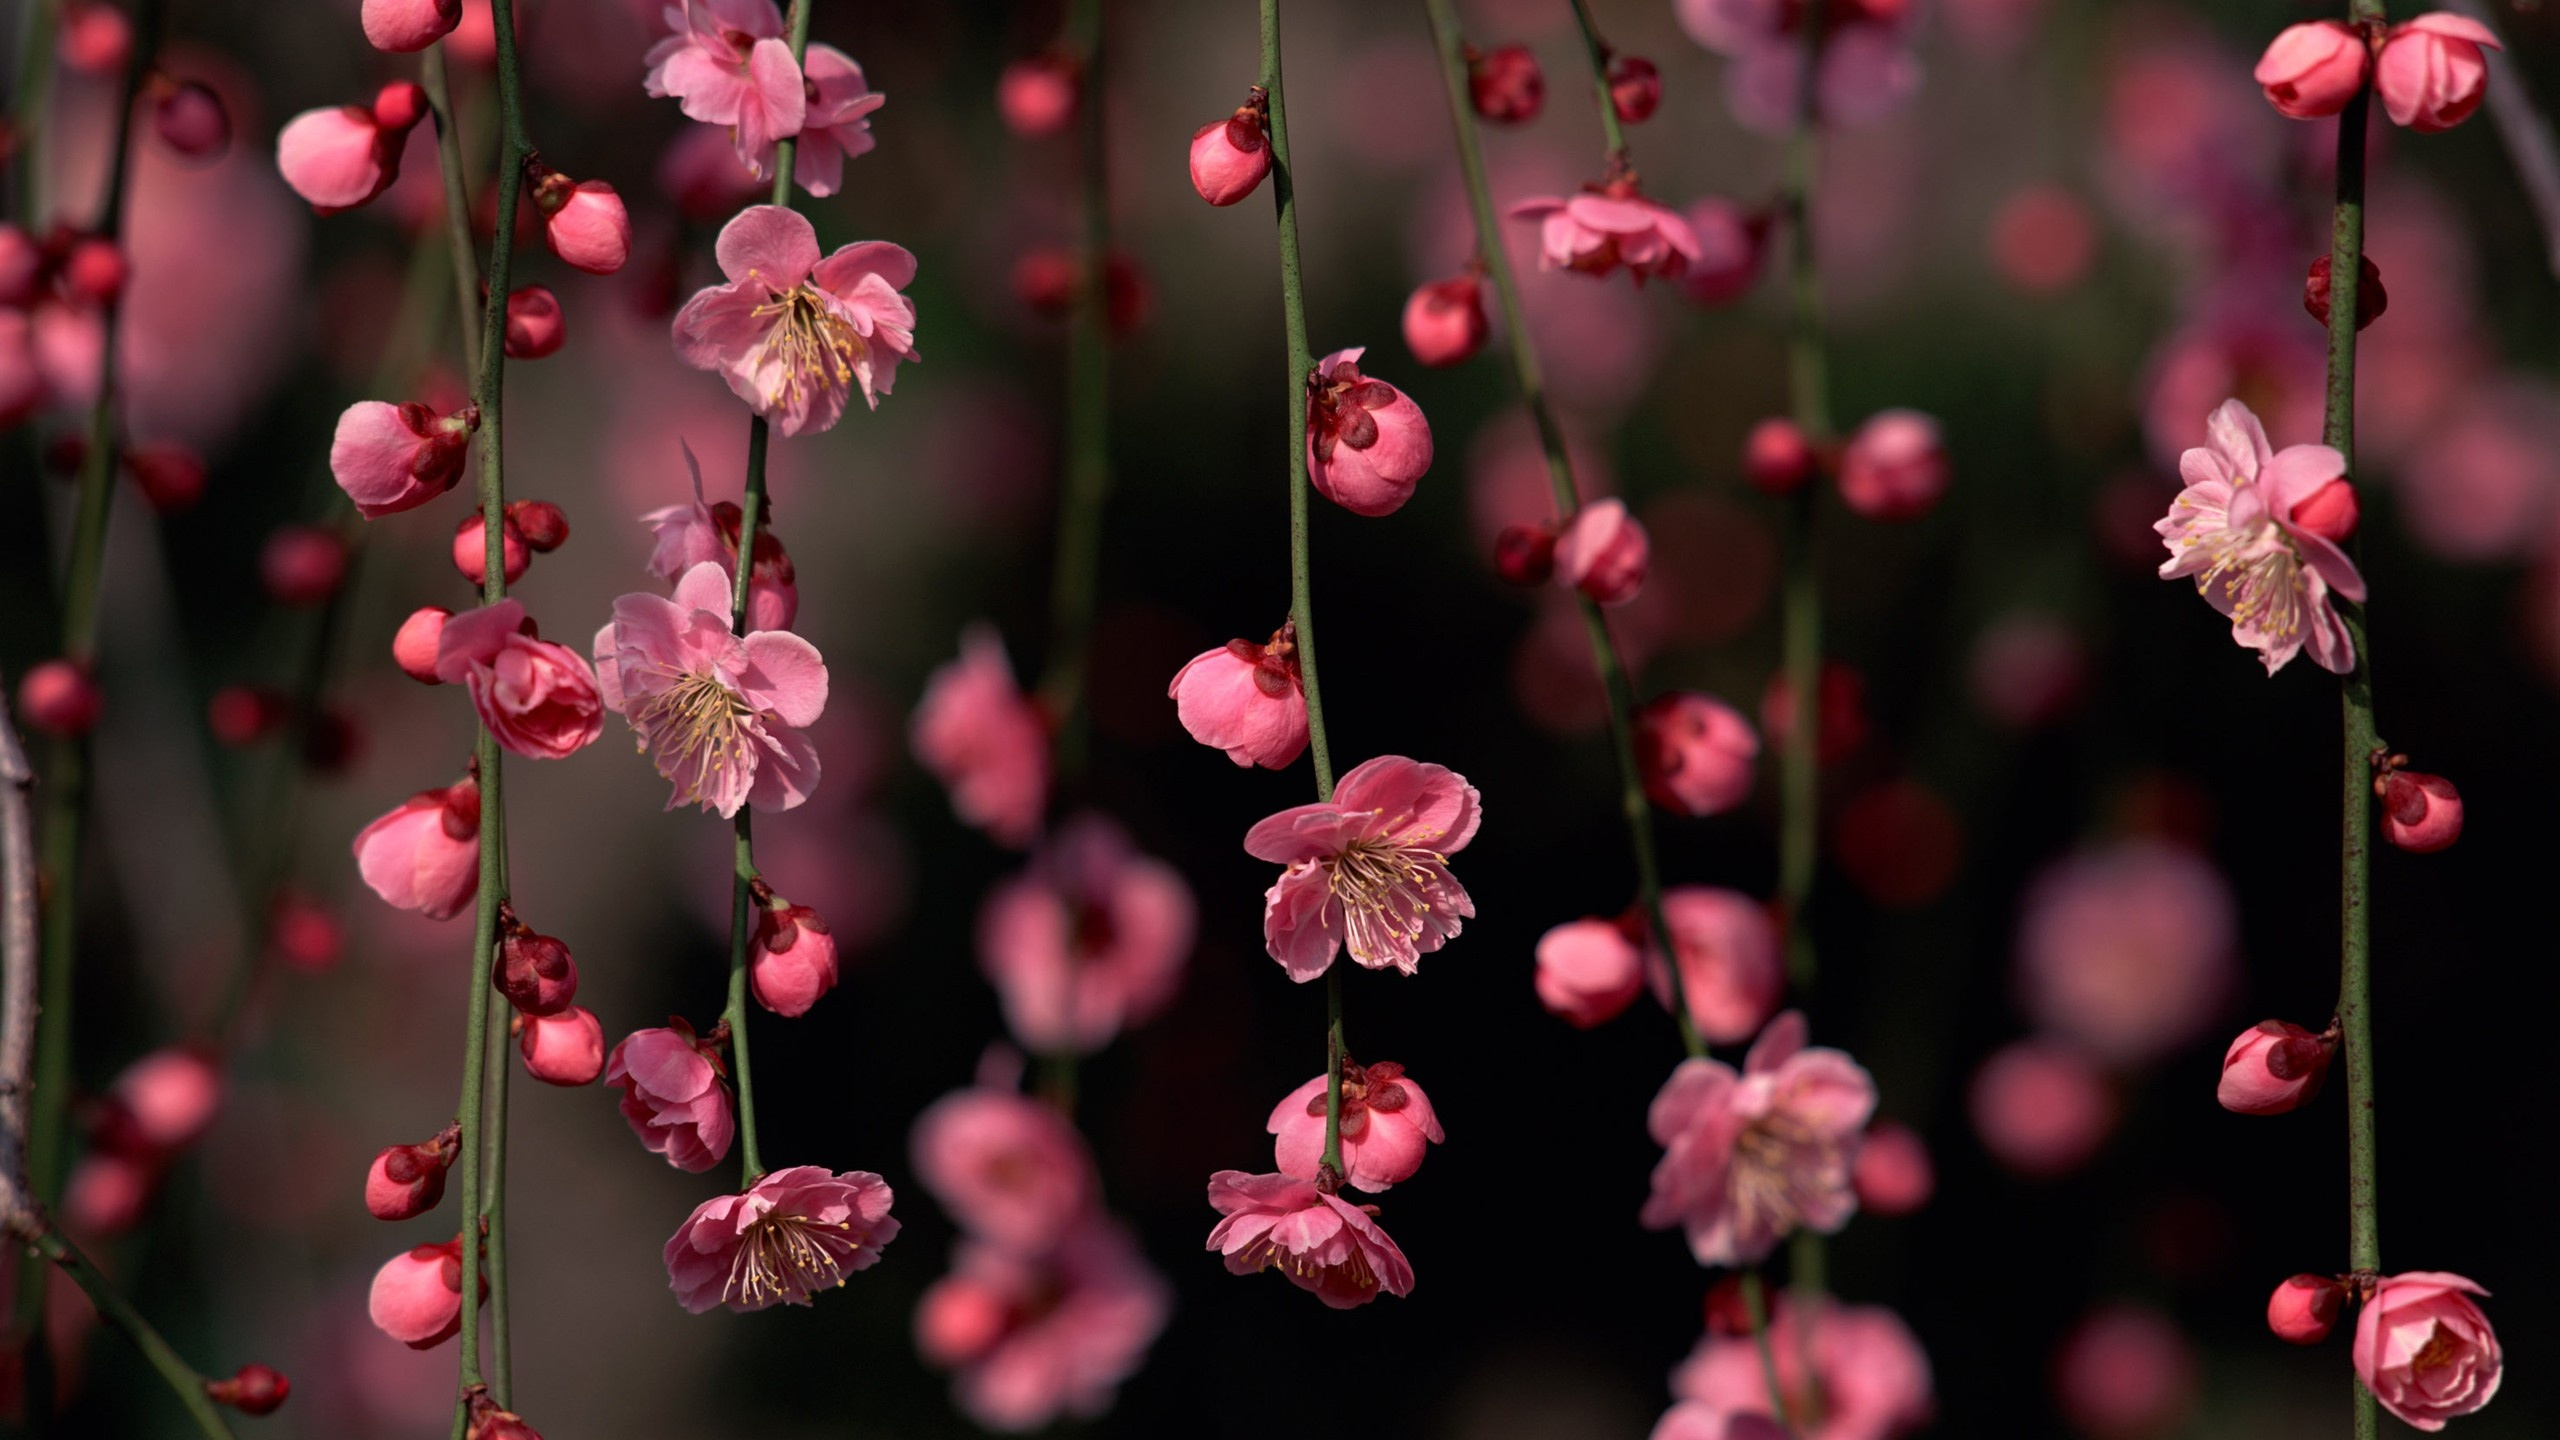 pink wallpapers flowers spring wallpaper 2560x1440 2560x1440